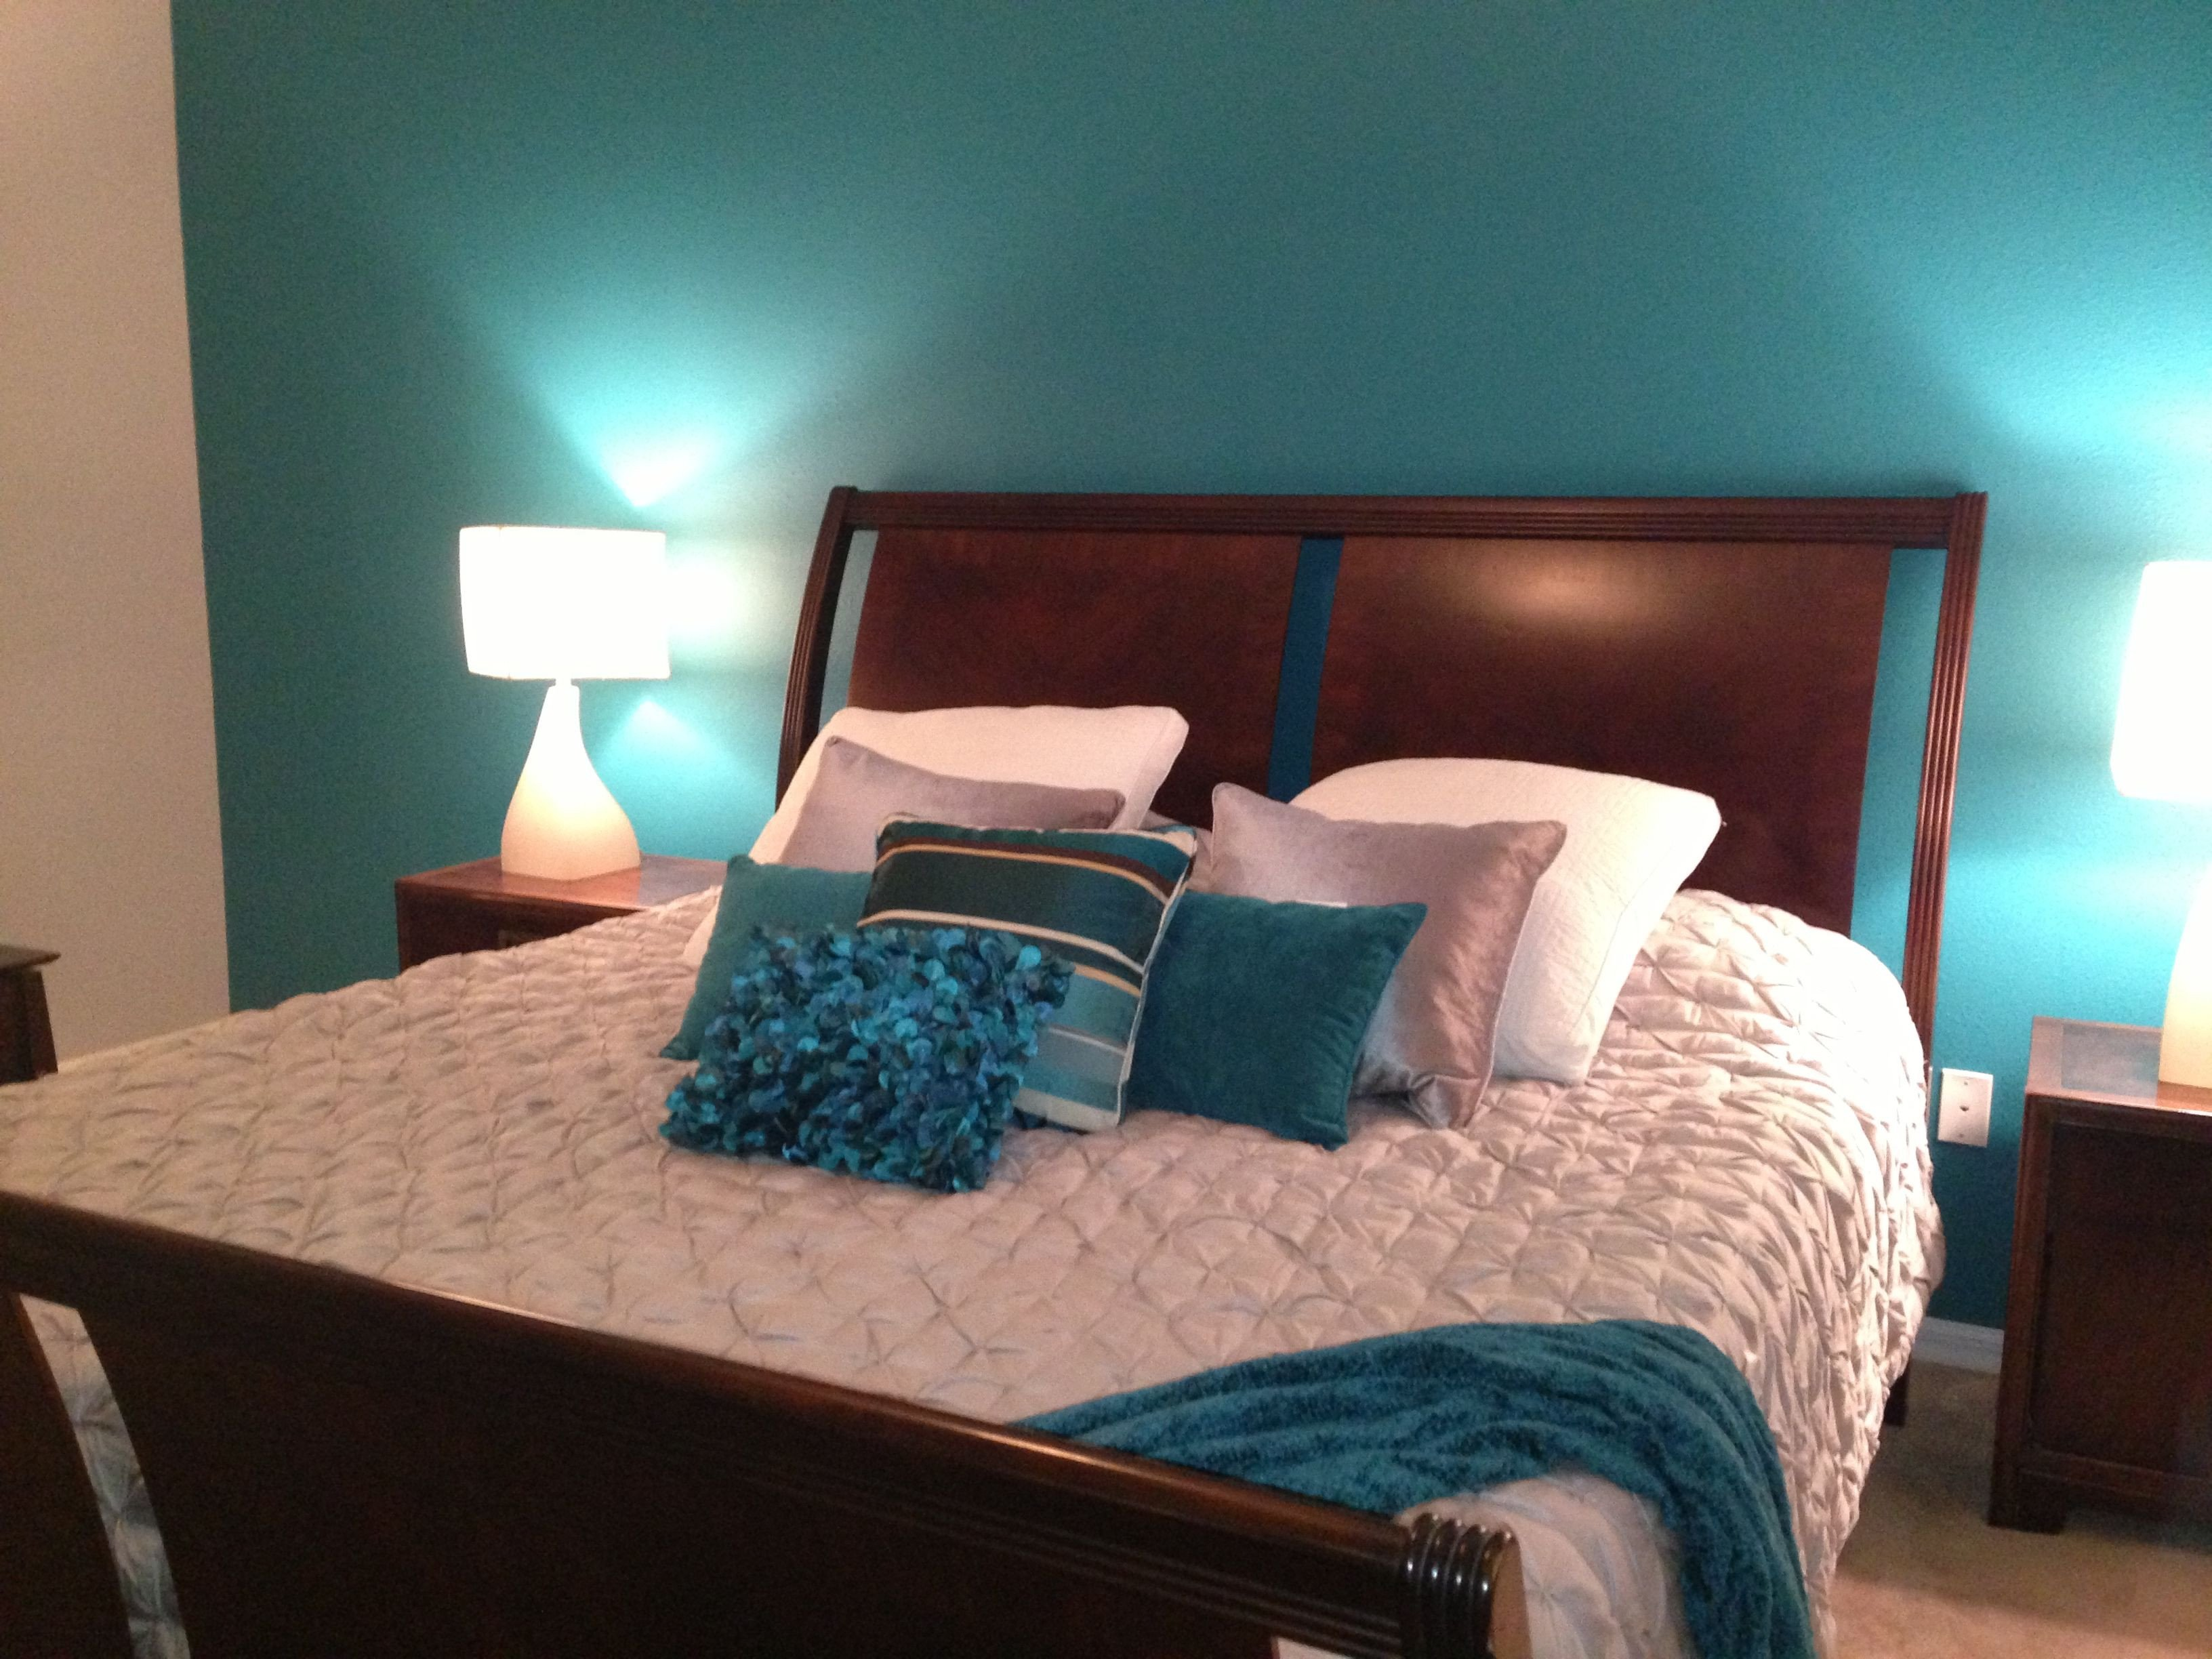 Teal and Gray Bedroom Decor Inspirational My Master Bedroom Teal and Grey